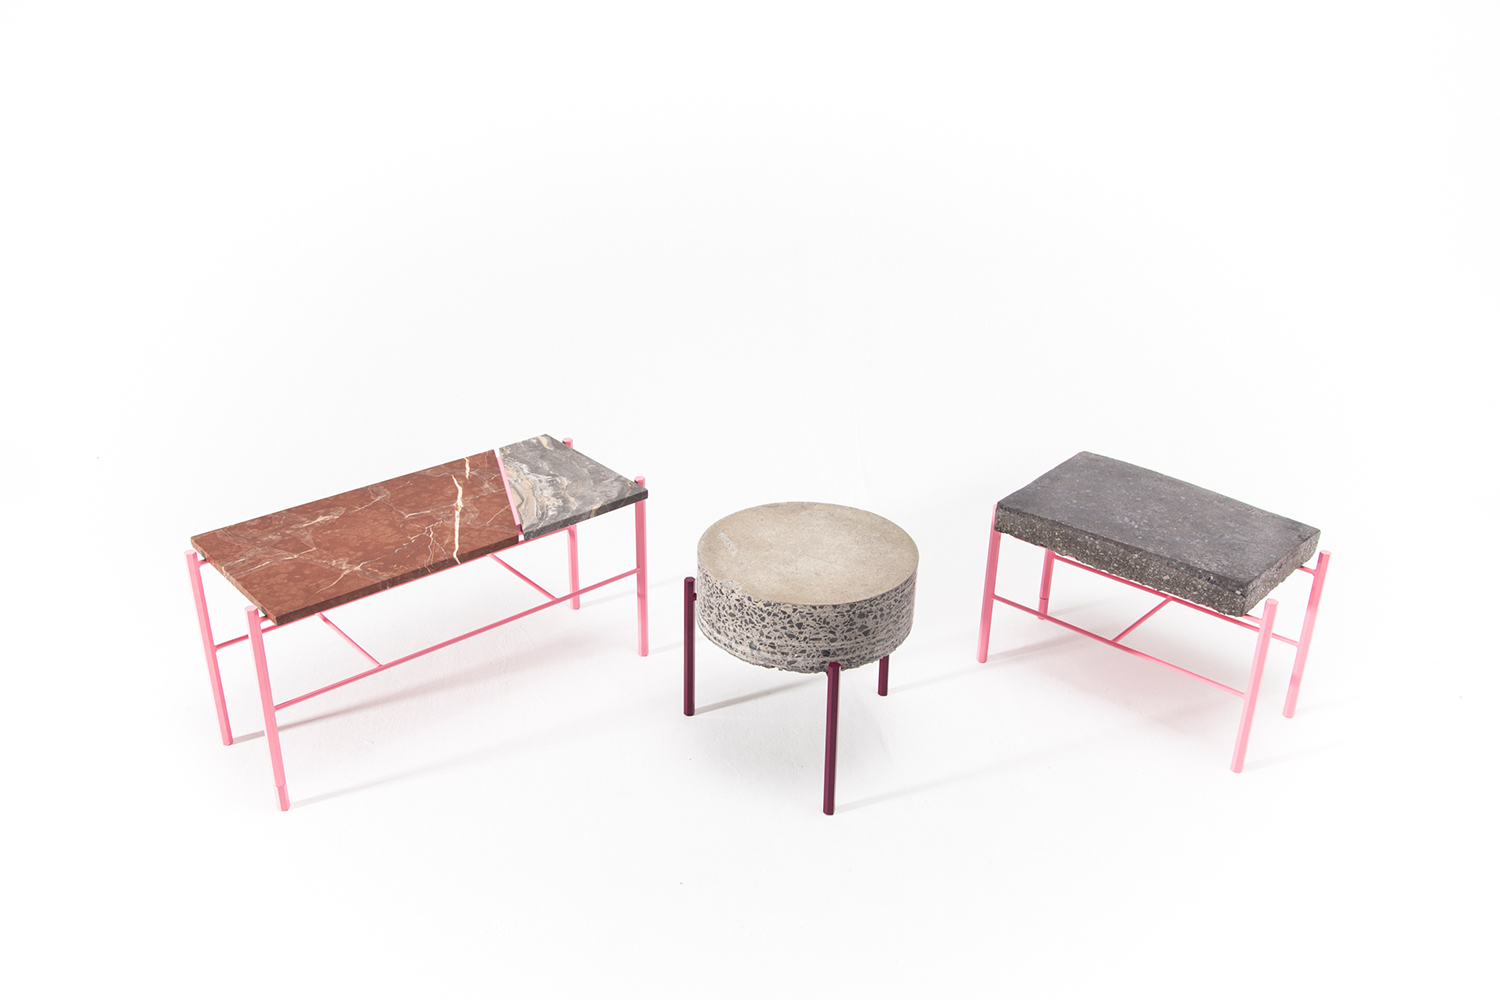 Coffee table made of concrete or marble scrap. Metal frame made to measure, light and bright color. Legs made of pink hexagonal metal stems, violet.